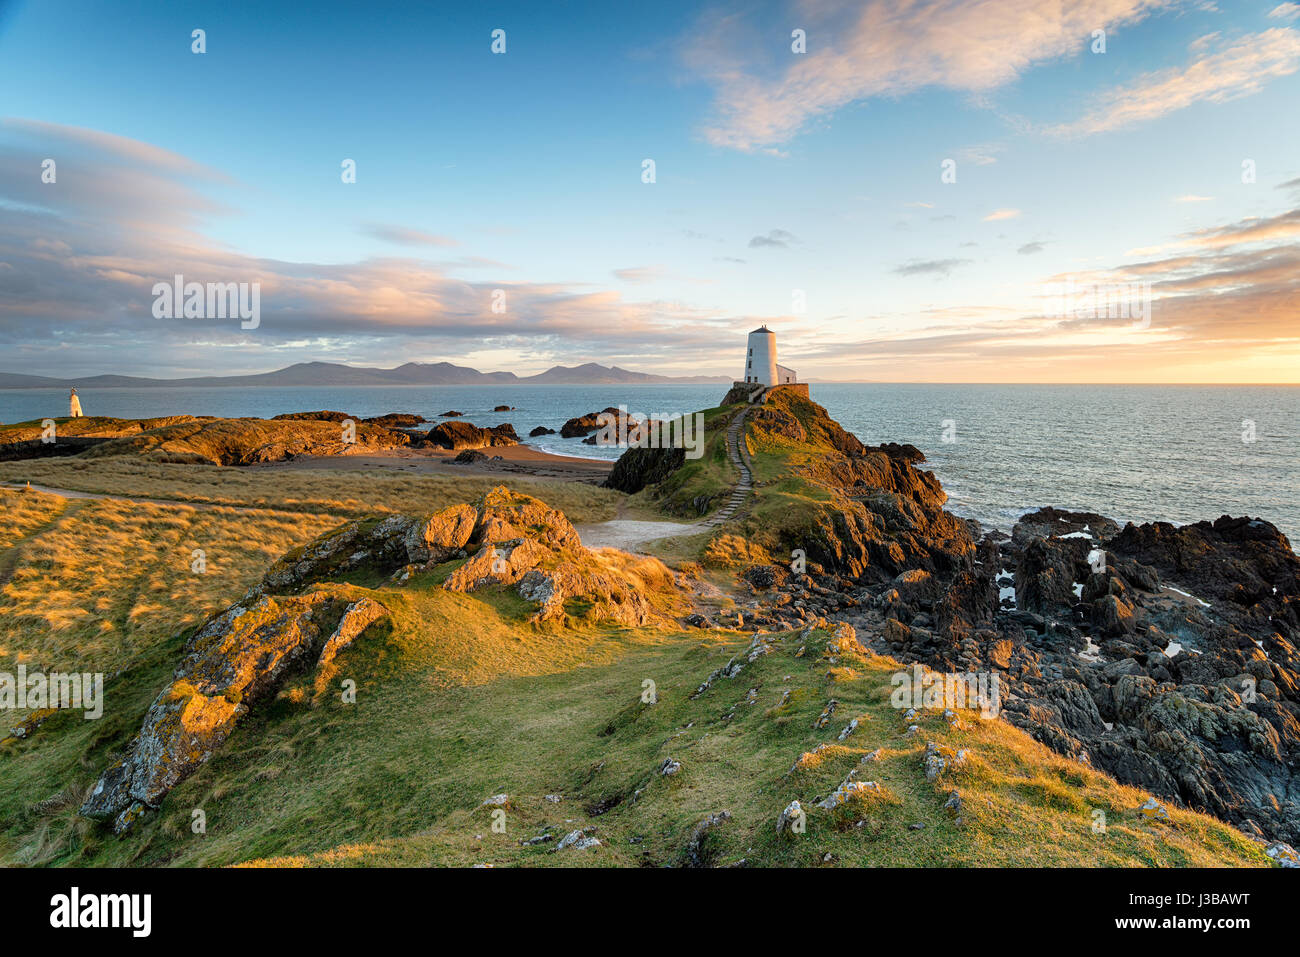 The lighthouse on the beautiful Llanddyn Island on the Anglesy coast of Wales - Stock Image